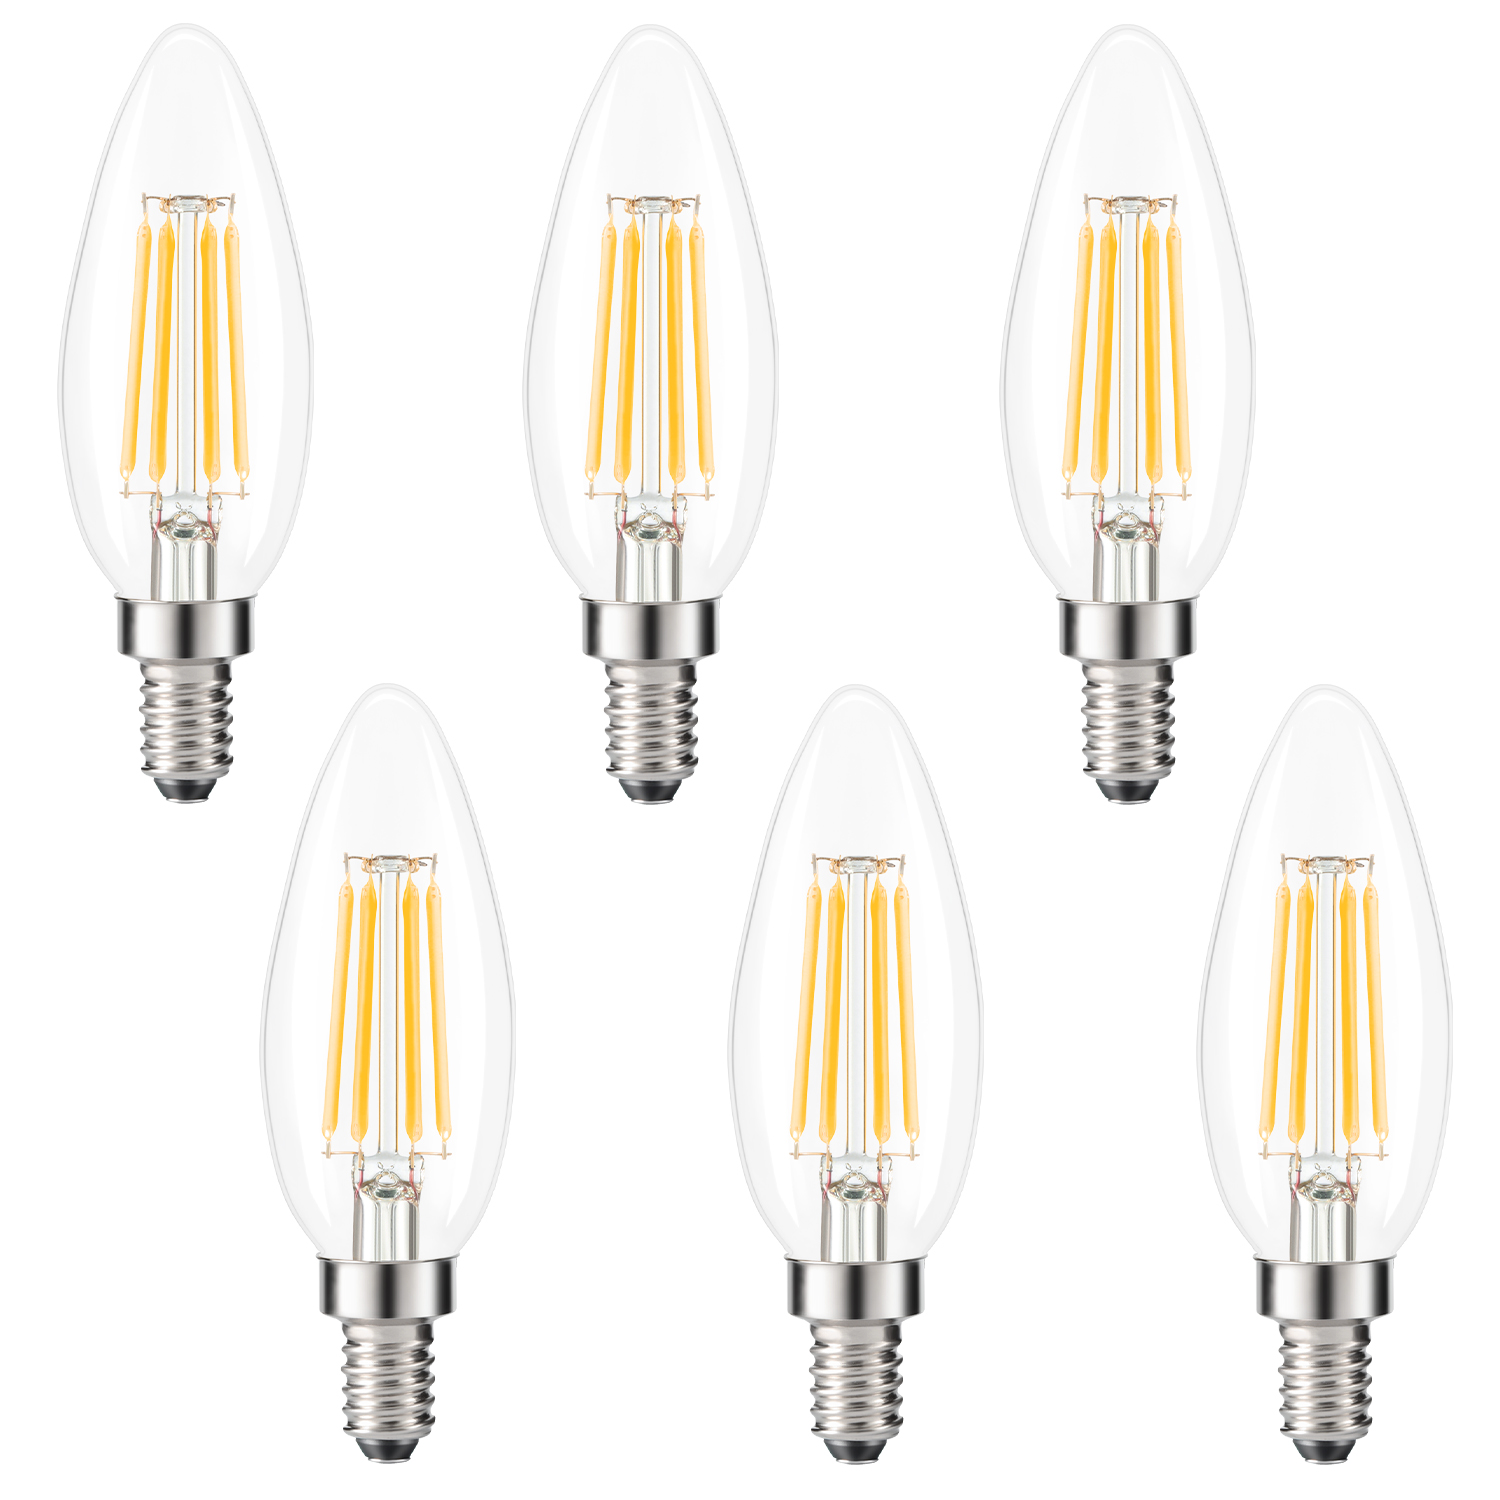 kohree edison candelabra bulb e12 led bulb b10 candle light bulb 40w equivalent 2700k warm white